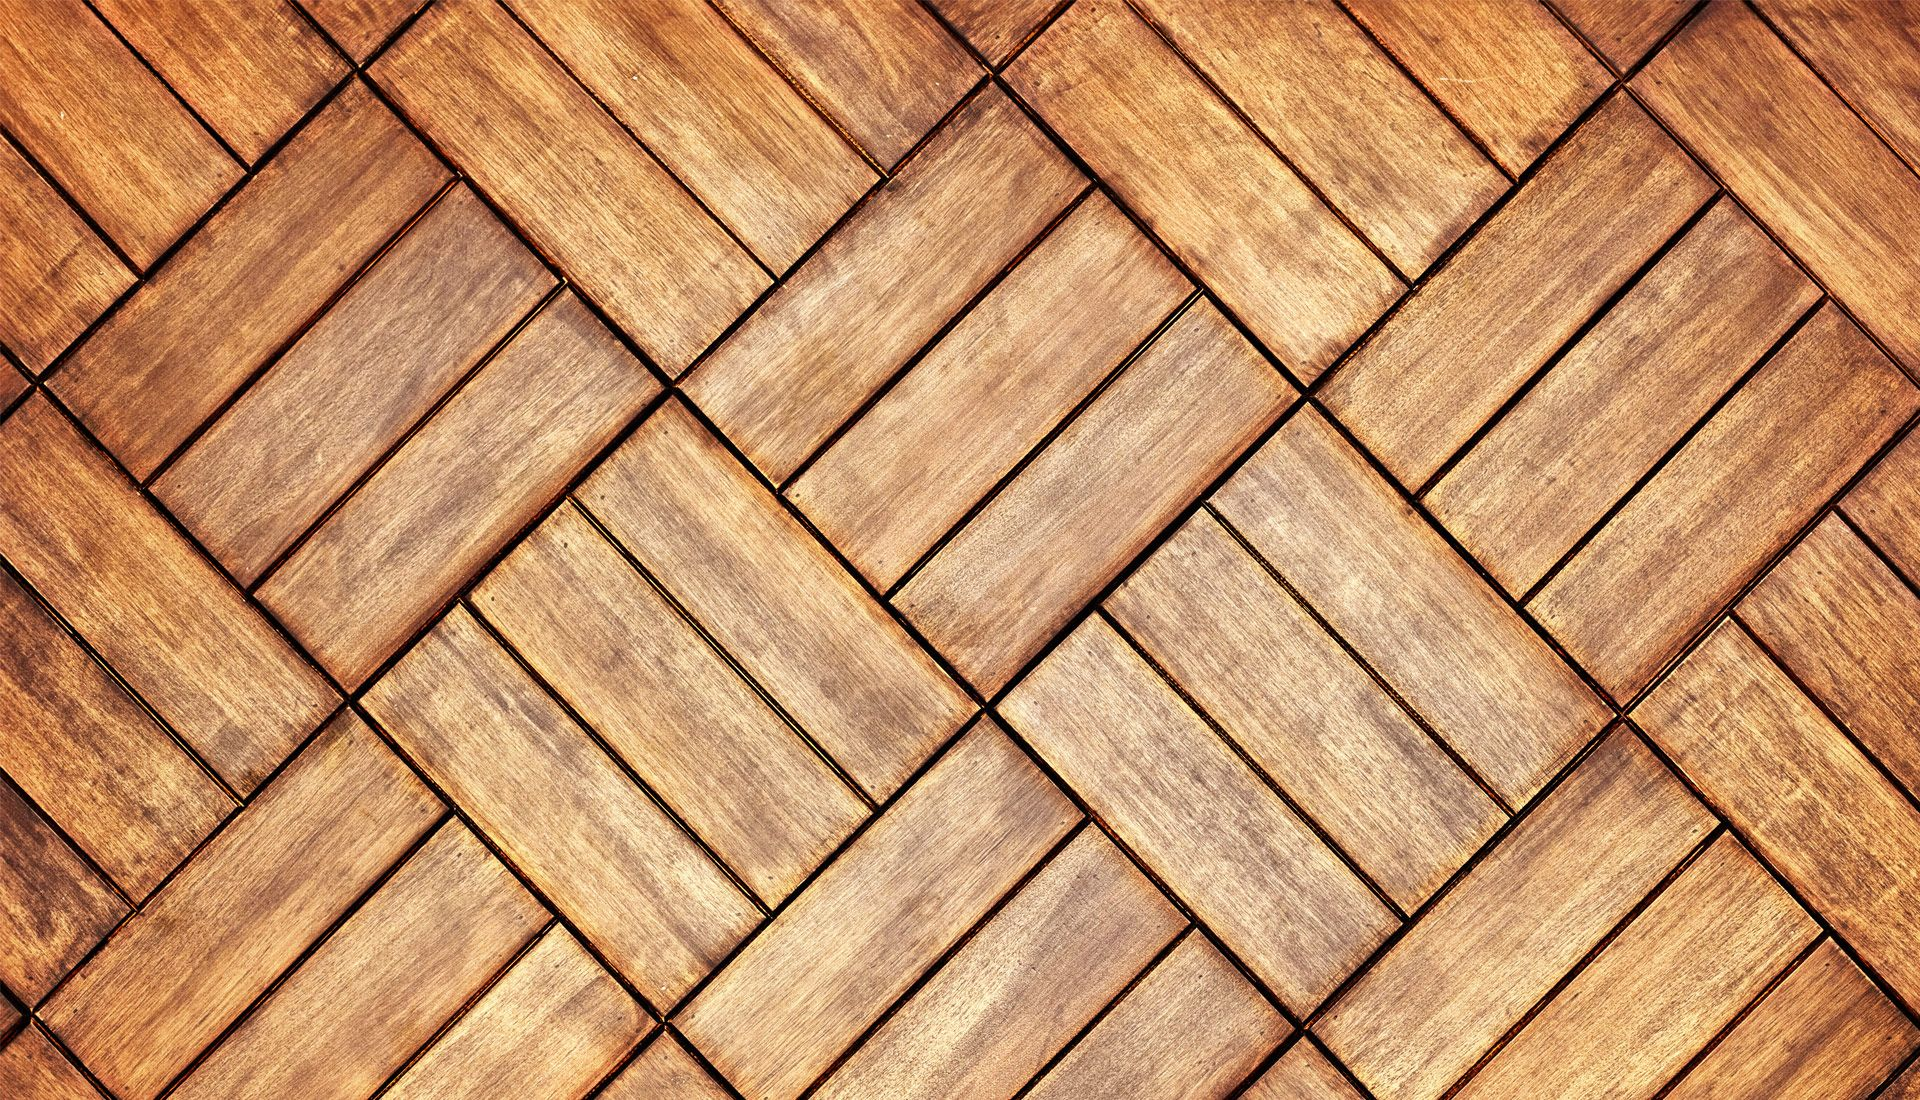 Parquet flooring google search kitchen pinterest floor cleaning a parquet floor dailygadgetfo Choice Image